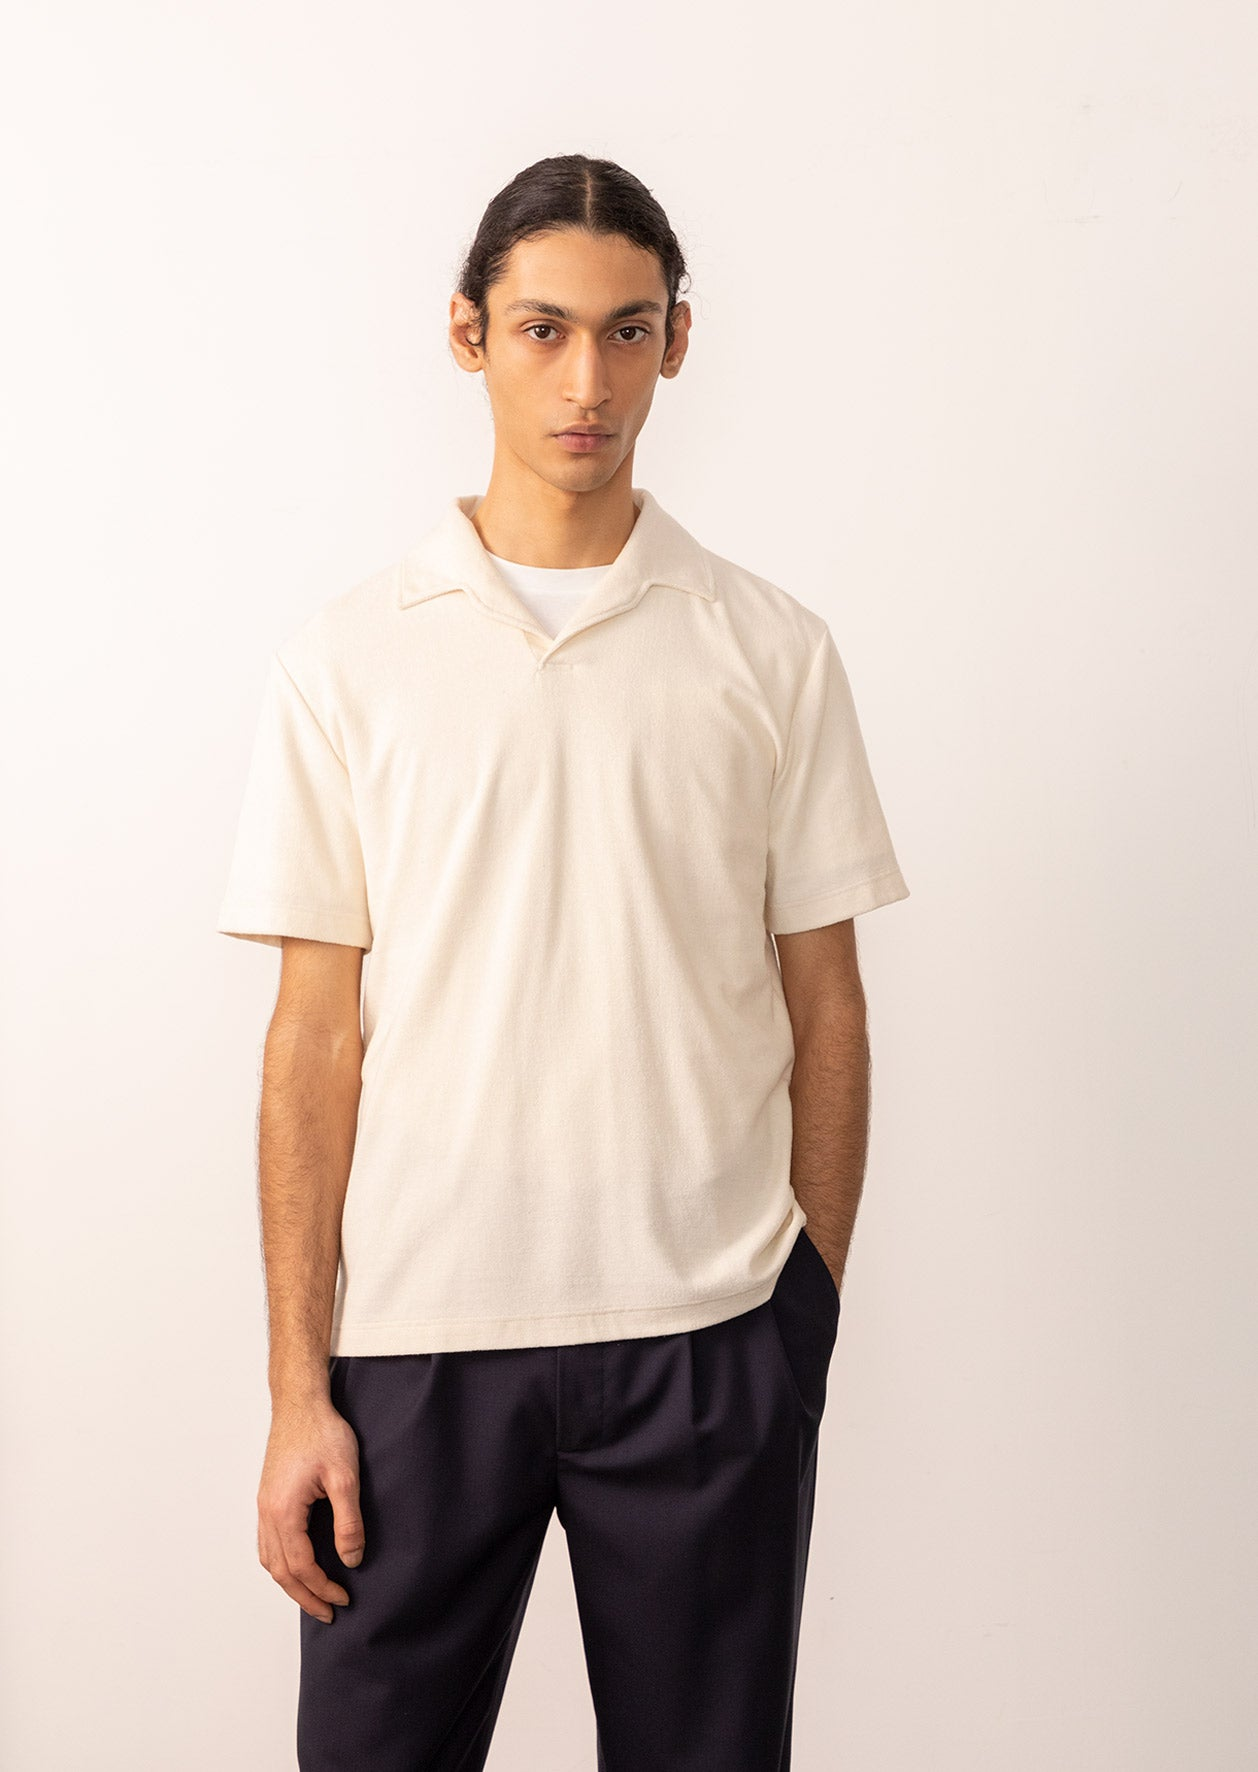 De Bonne Facture - Short sleeves polo - Organic cotton pile - Ecru